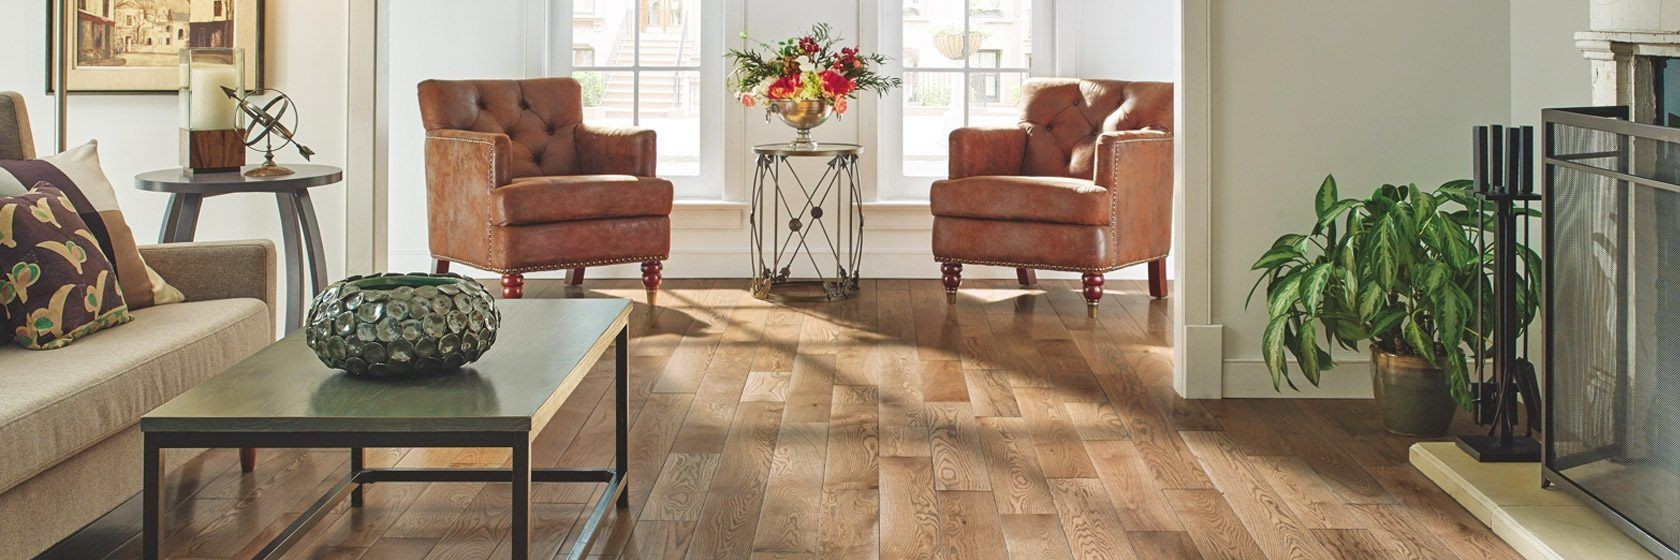 Bruce Prefinished Hardwood Flooring Home Depot Of 19 Best Of Hardwood Floor Tile Stock Dizpos Com with Regard to Hardwood Floor Tile Best Of Oak solid Hardwood Hay Ground Saktb39l4hgw is Part Of the Pics